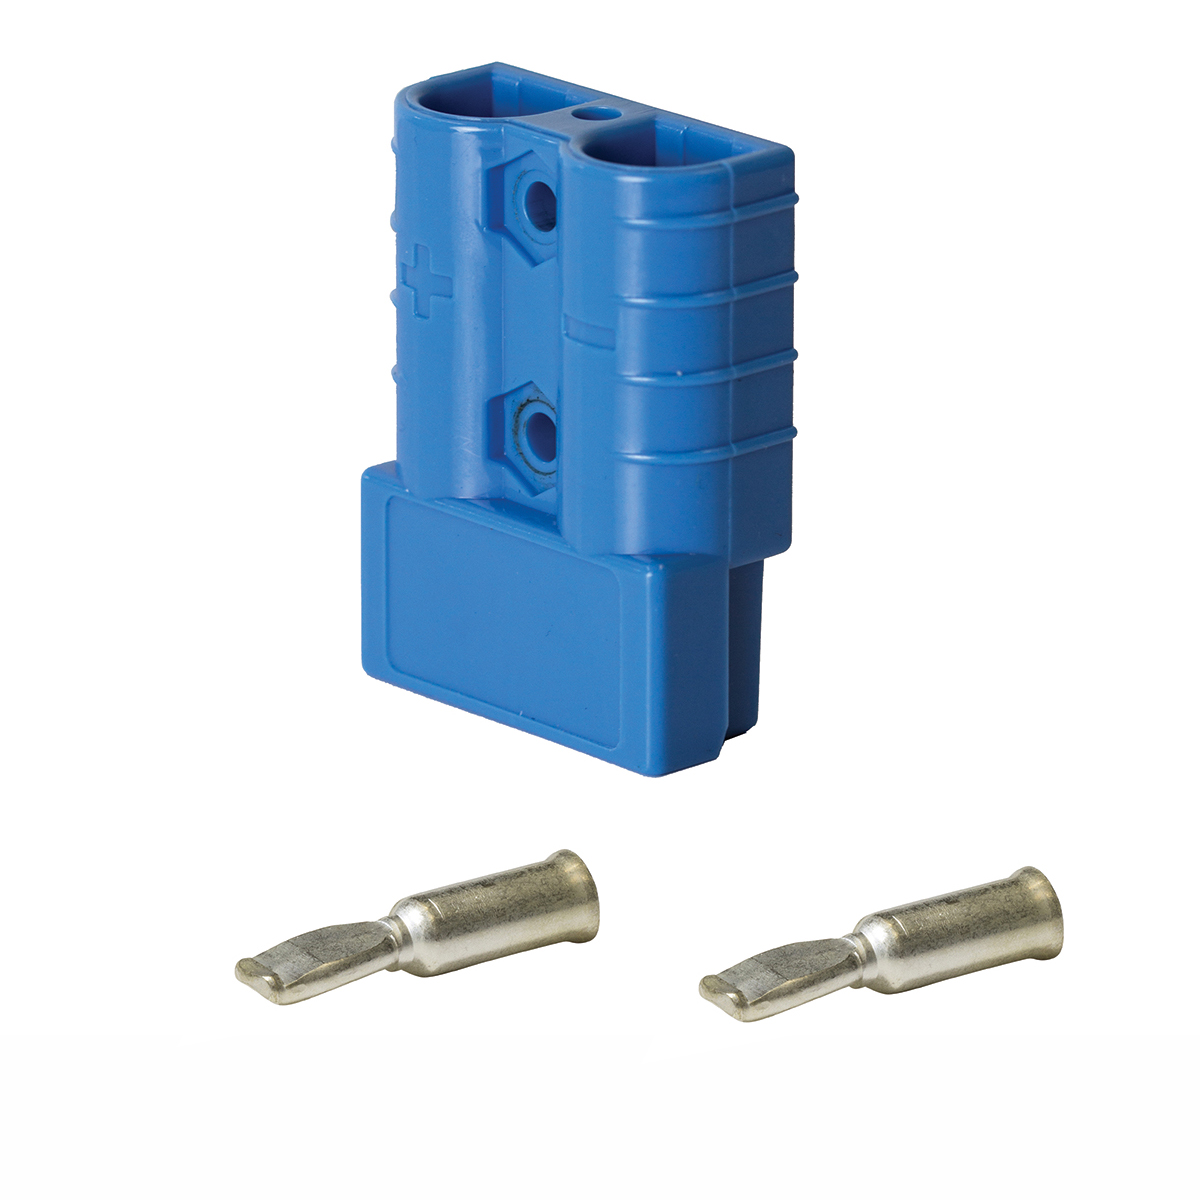 Heavy Duty Connector  50amp  Blue  Pins Suit 8mm